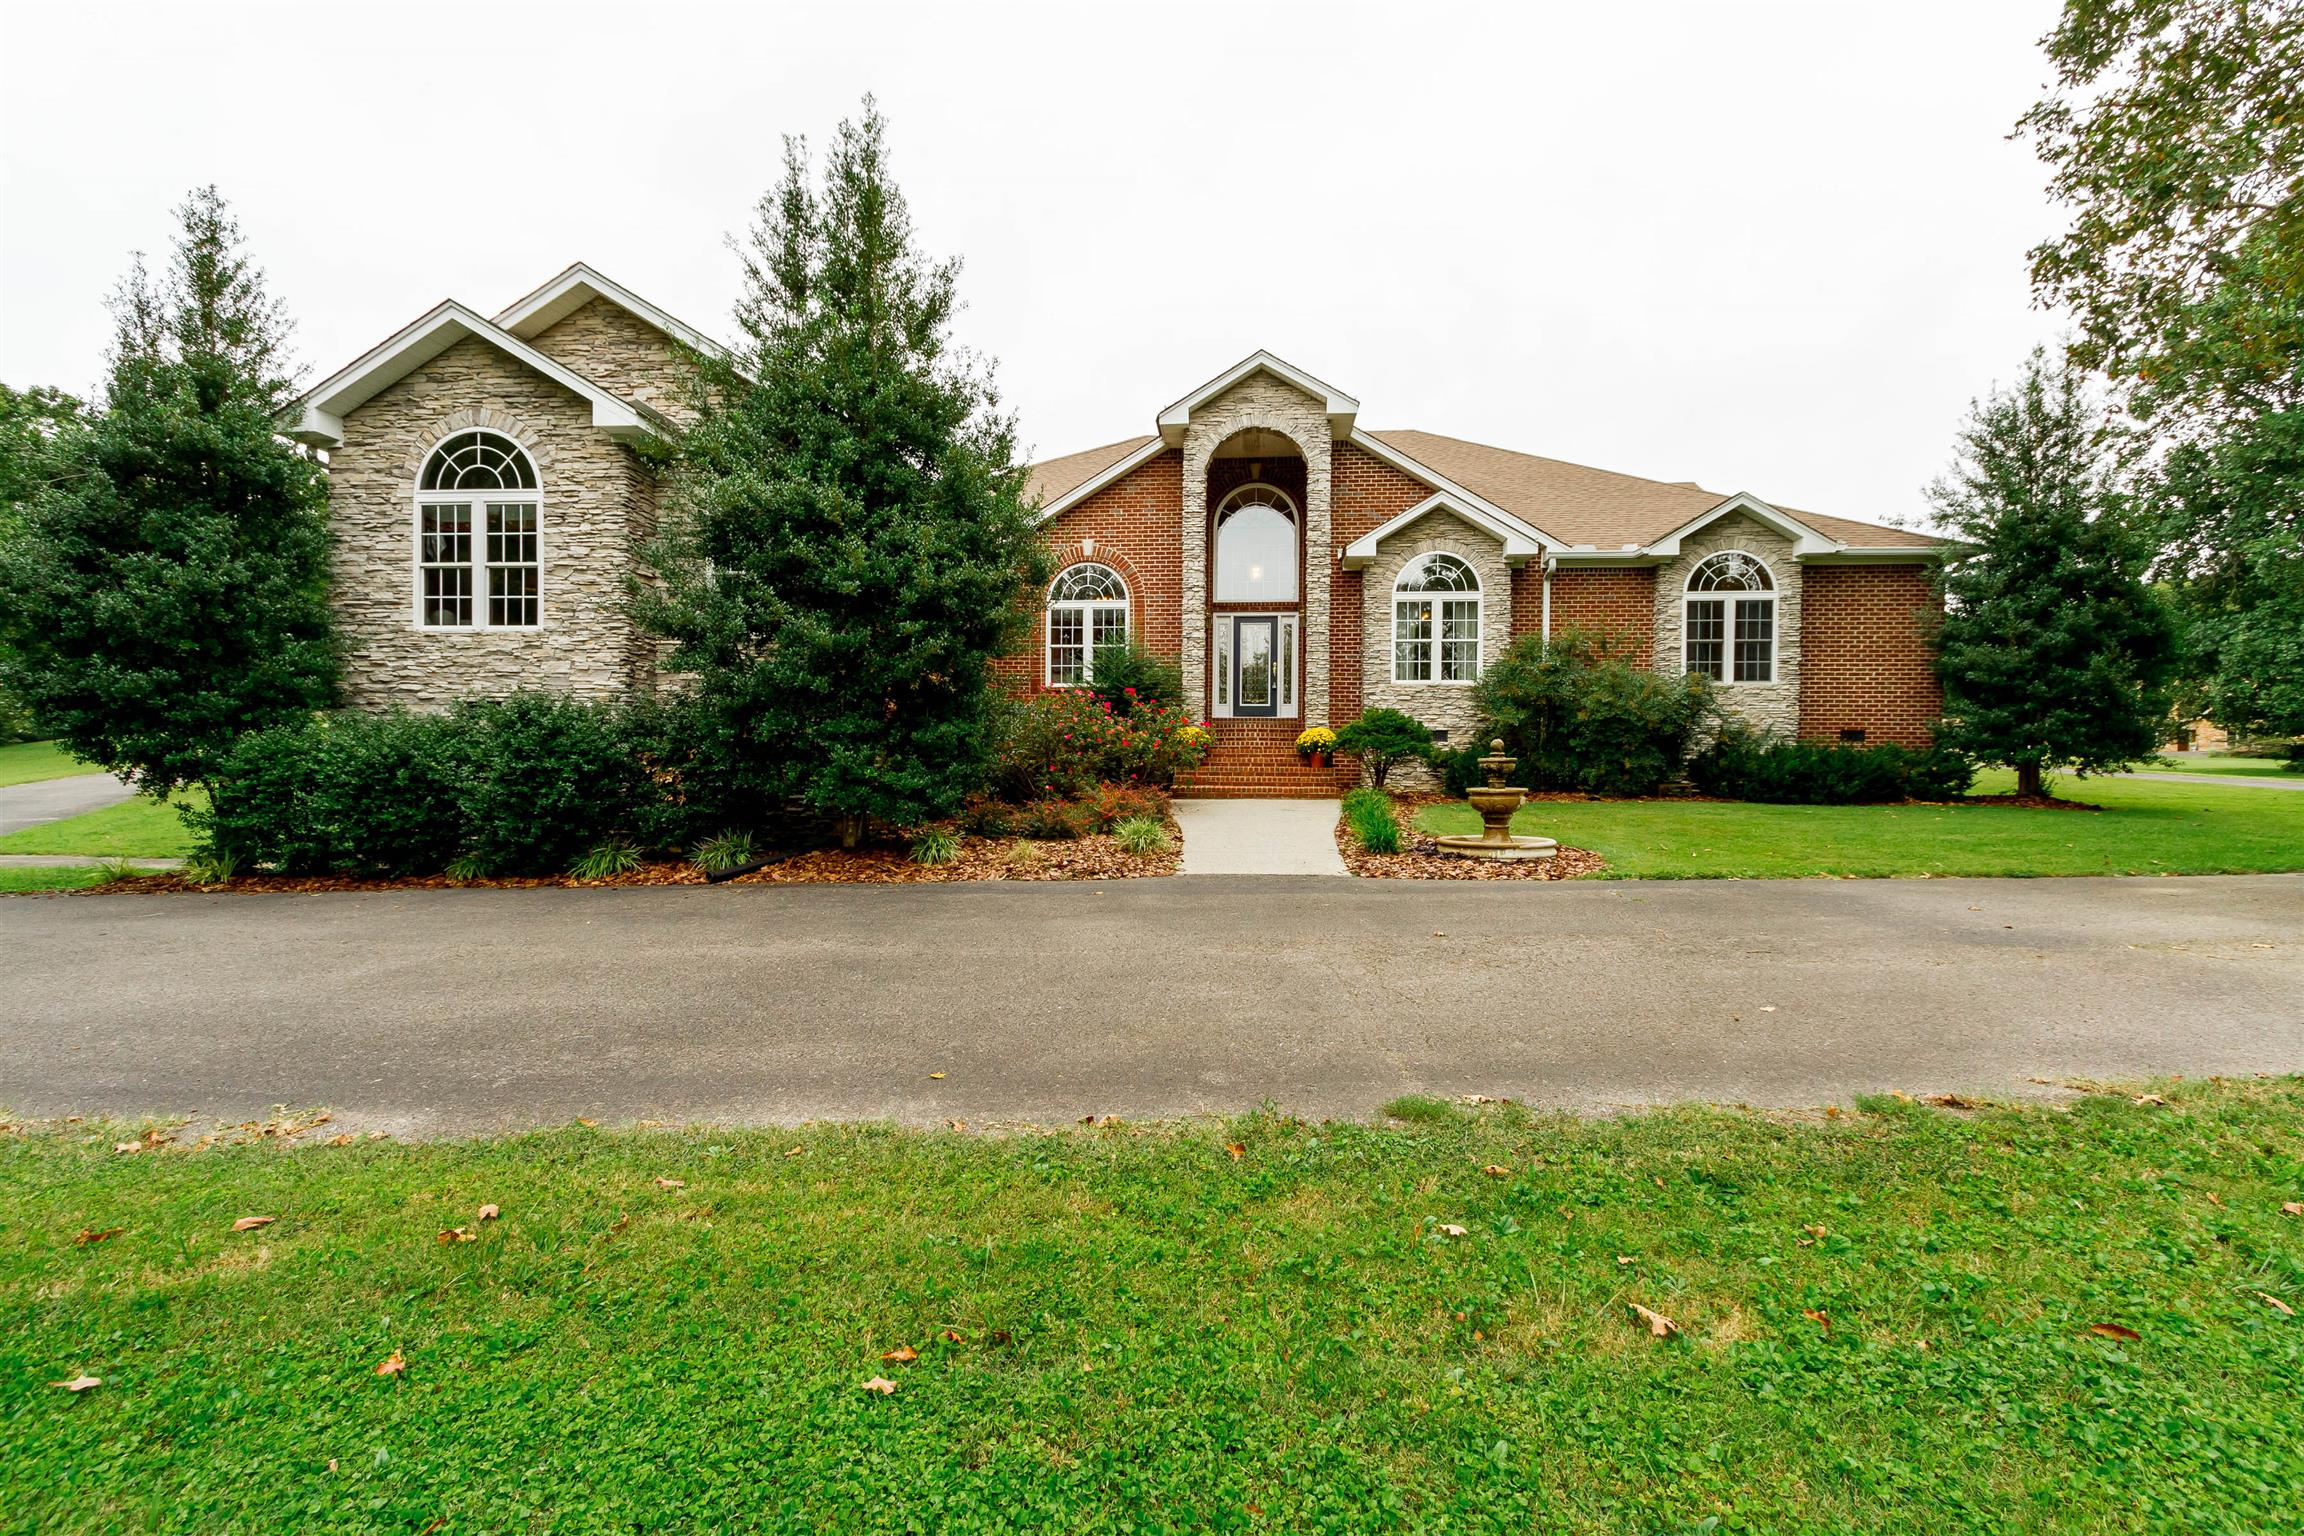 1011 Spears Way, Greenbrier, TN 37073 - Greenbrier, TN real estate listing